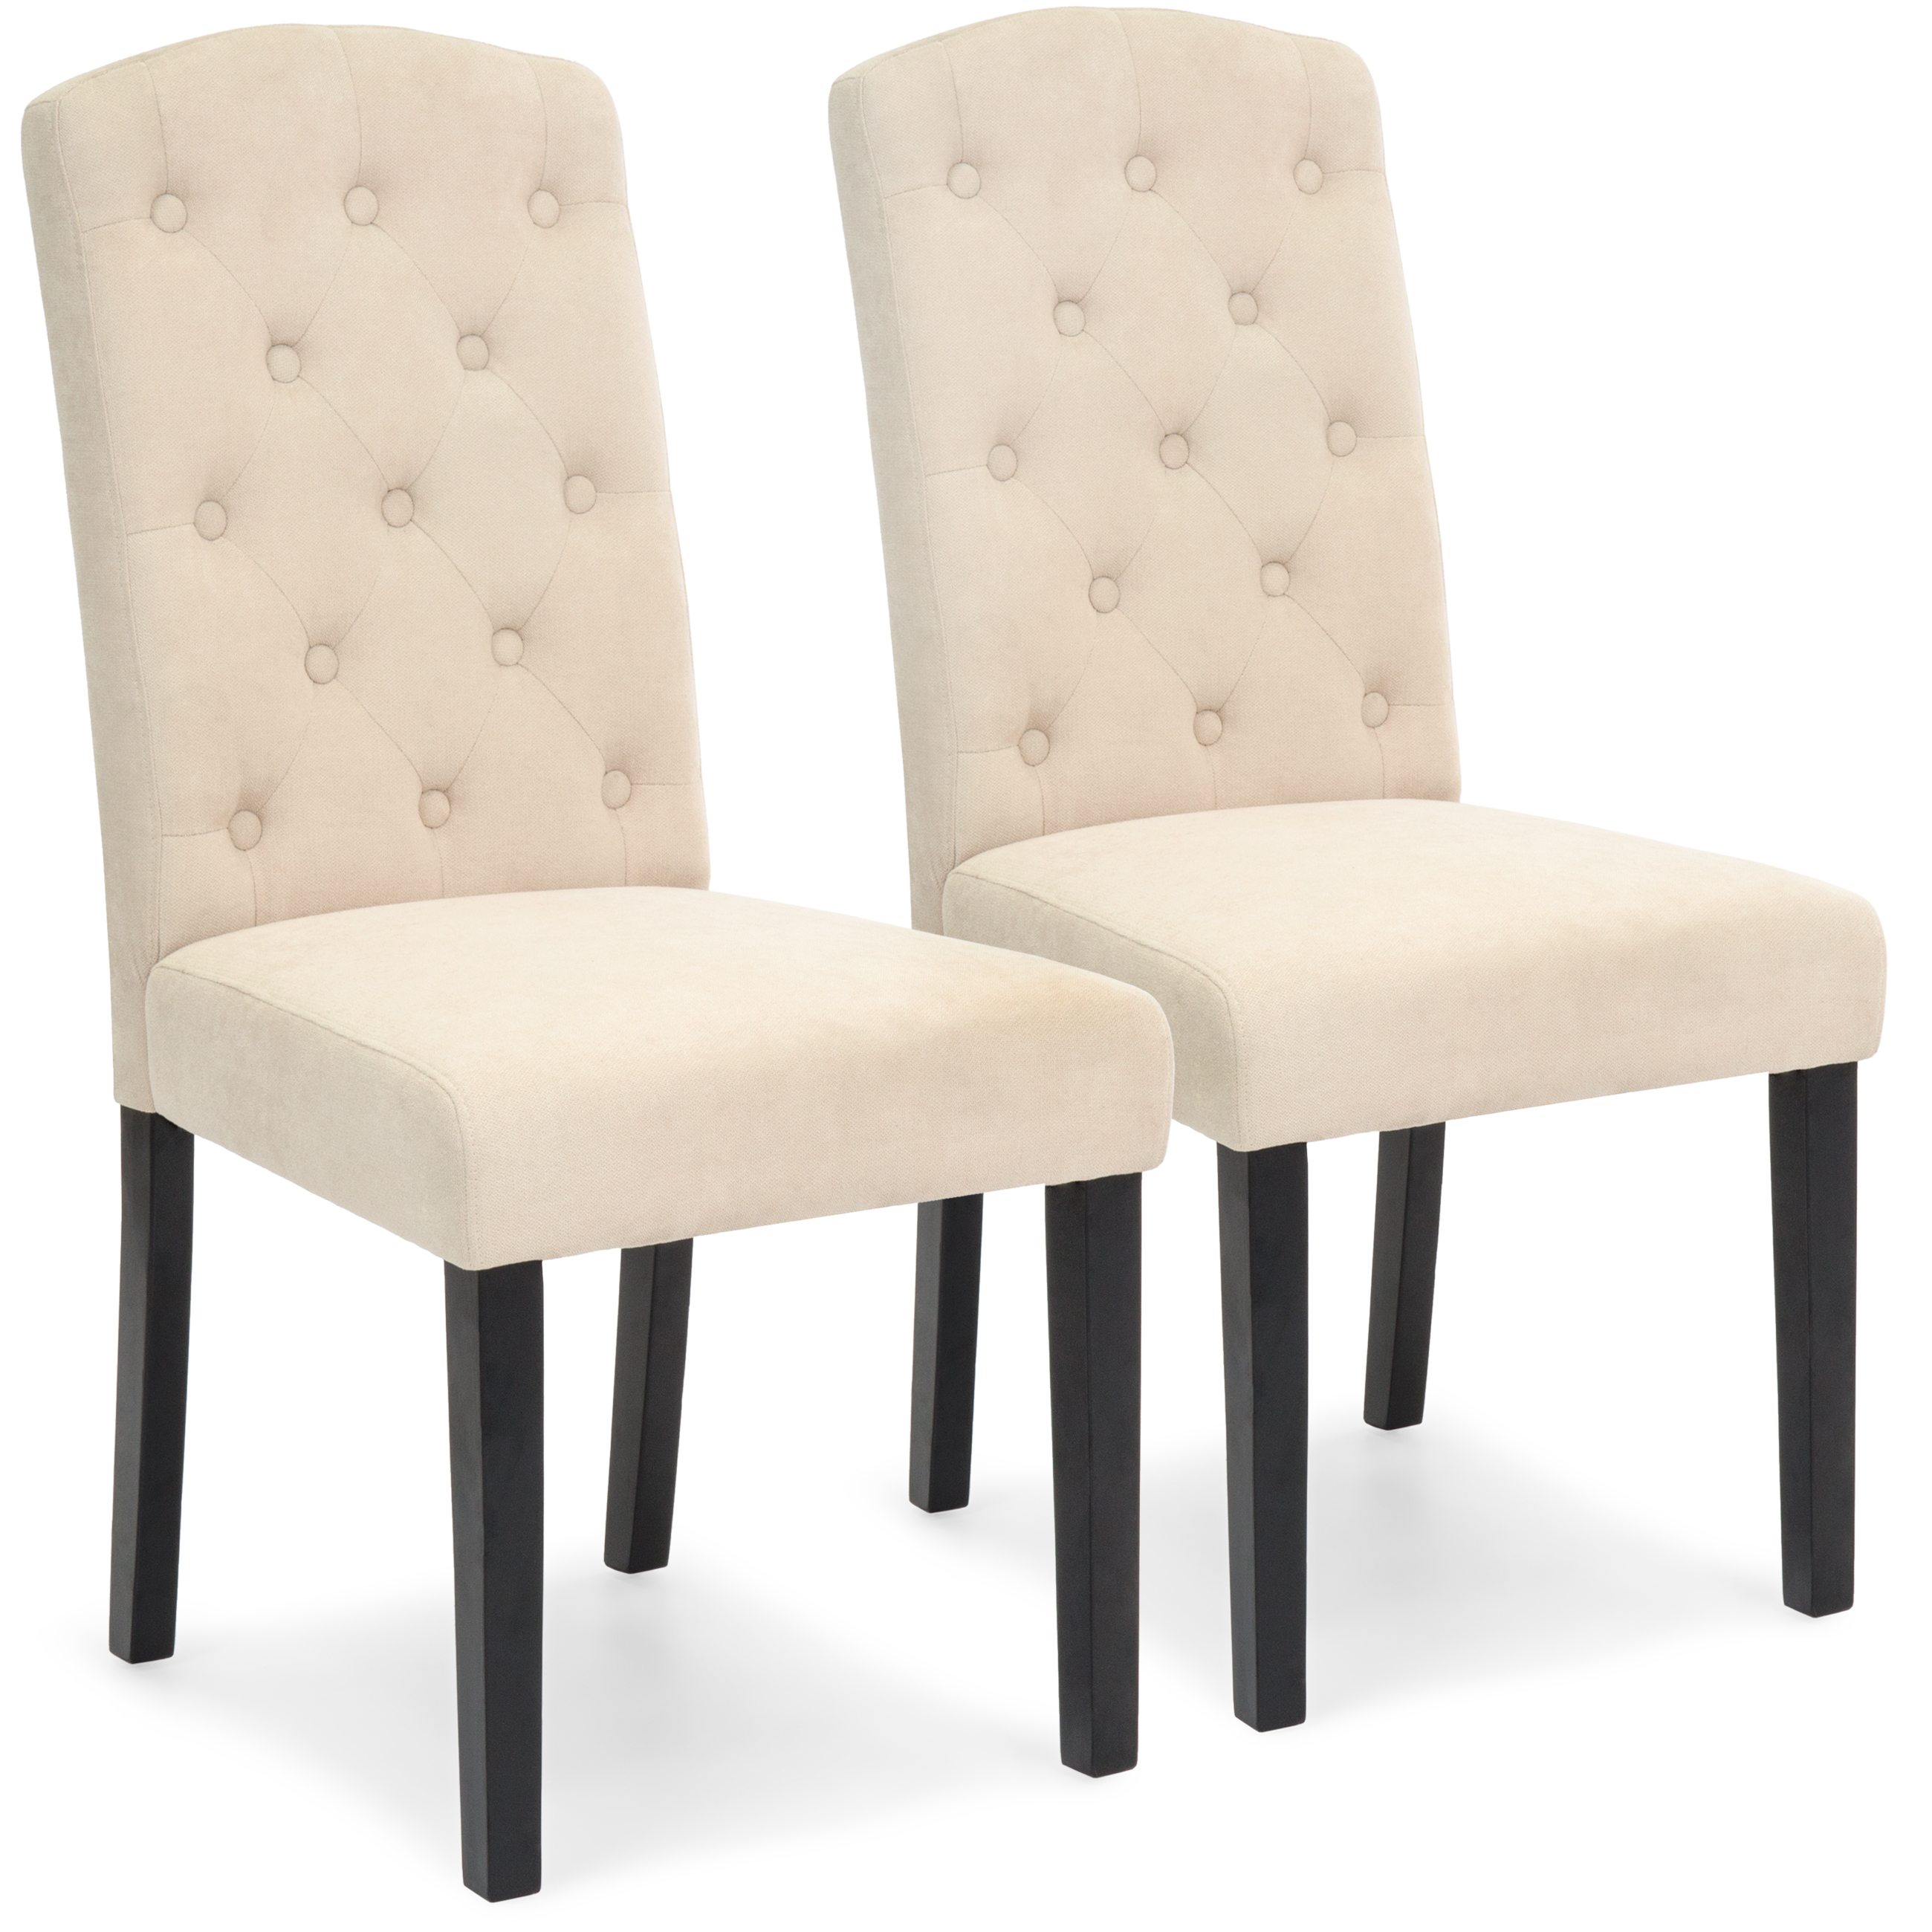 Best Choice Products Set of 2 Tufted Fabric Parsons Dining Chairs Home Furniture for Dining and Living Room - Beige